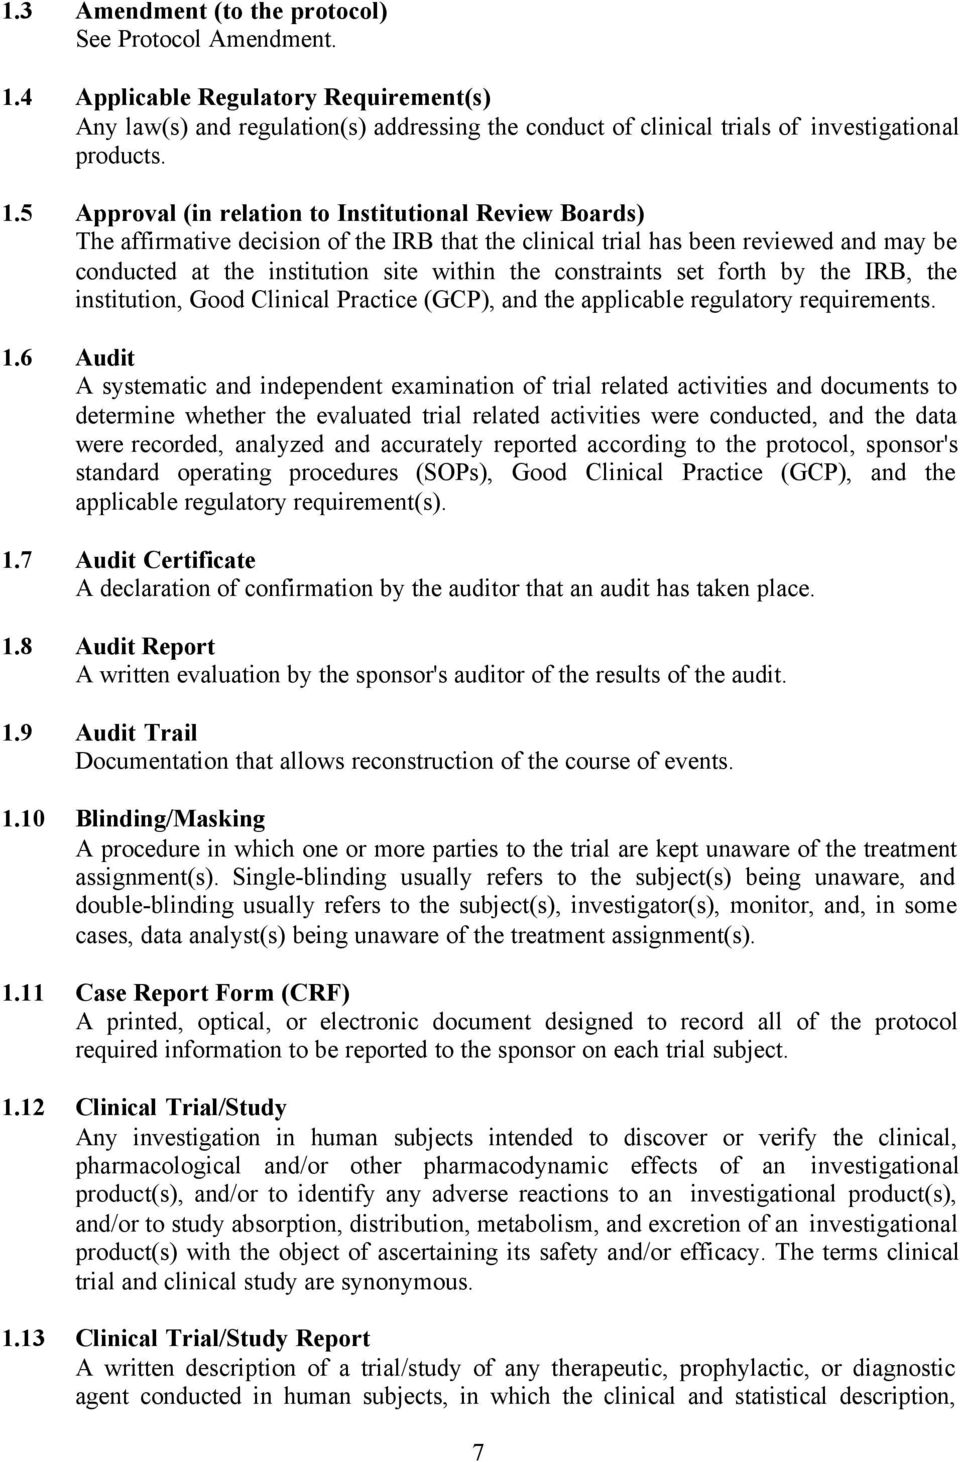 5 Approval (in relation to Institutional Review Boards) The affirmative decision of the IRB that the clinical trial has been reviewed and may be conducted at the institution site within the